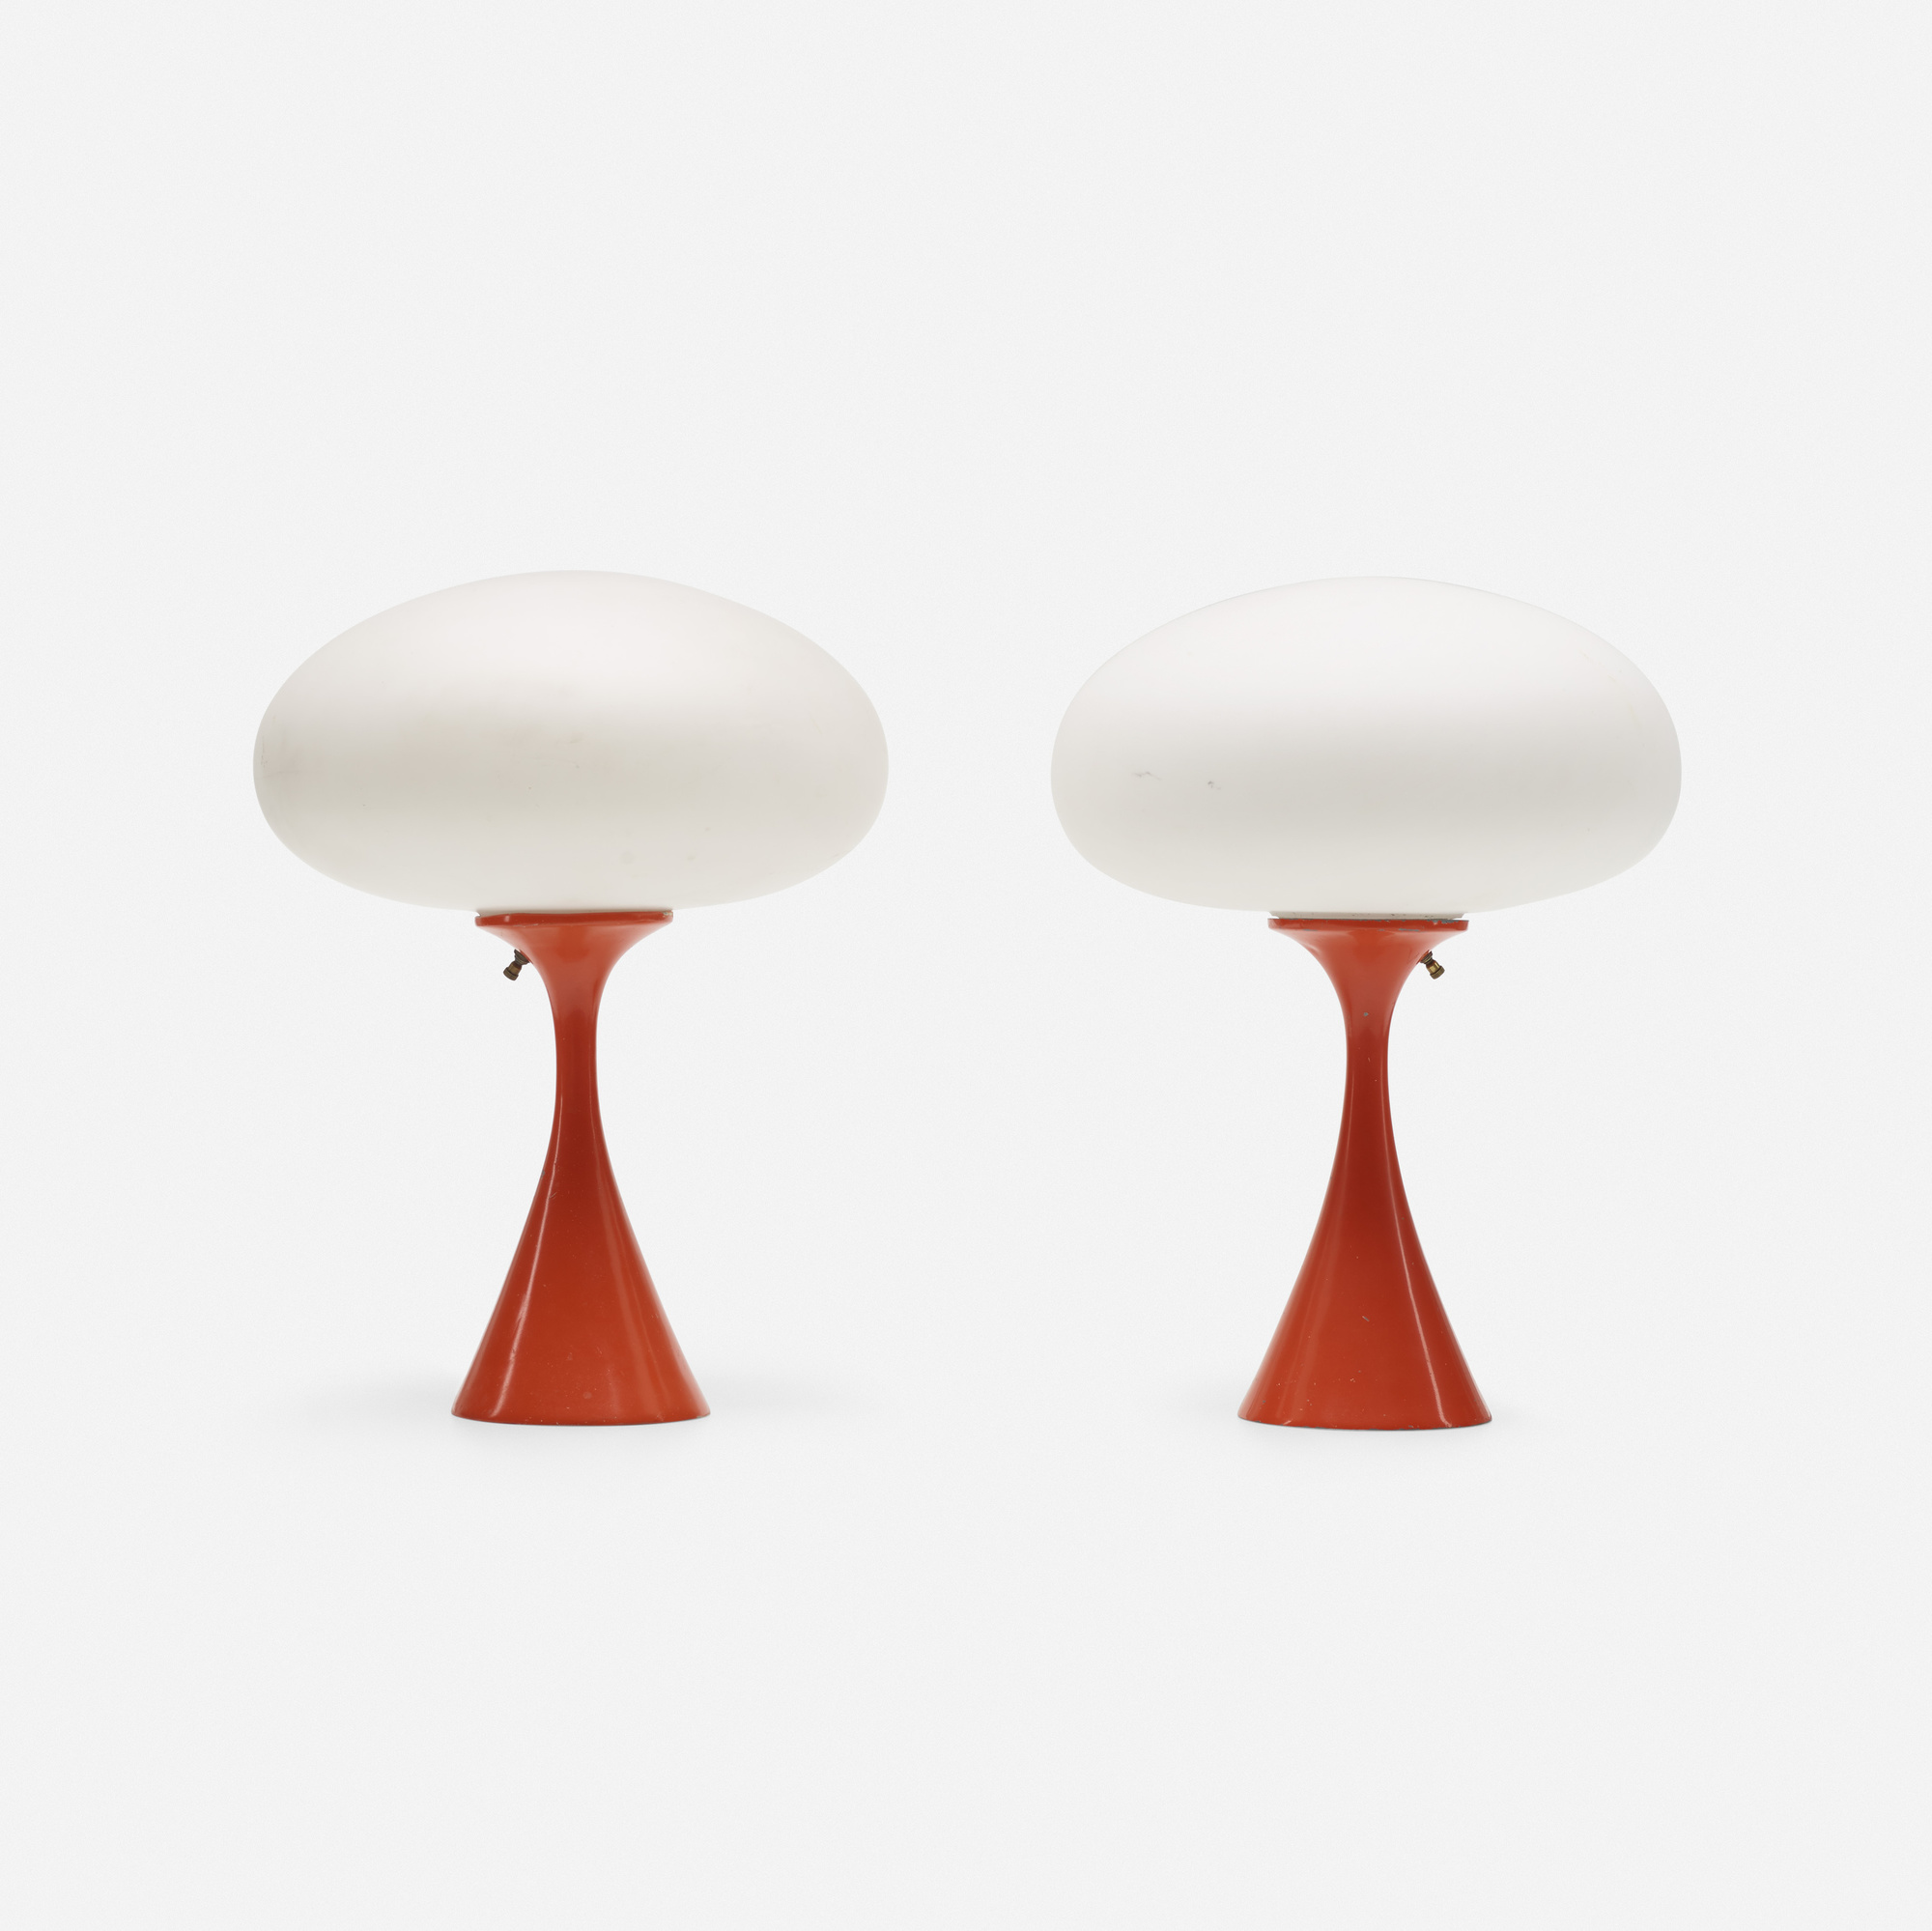 297: Laurel Lamp Co. / Mushroom table lamps, pair (1 of 2)